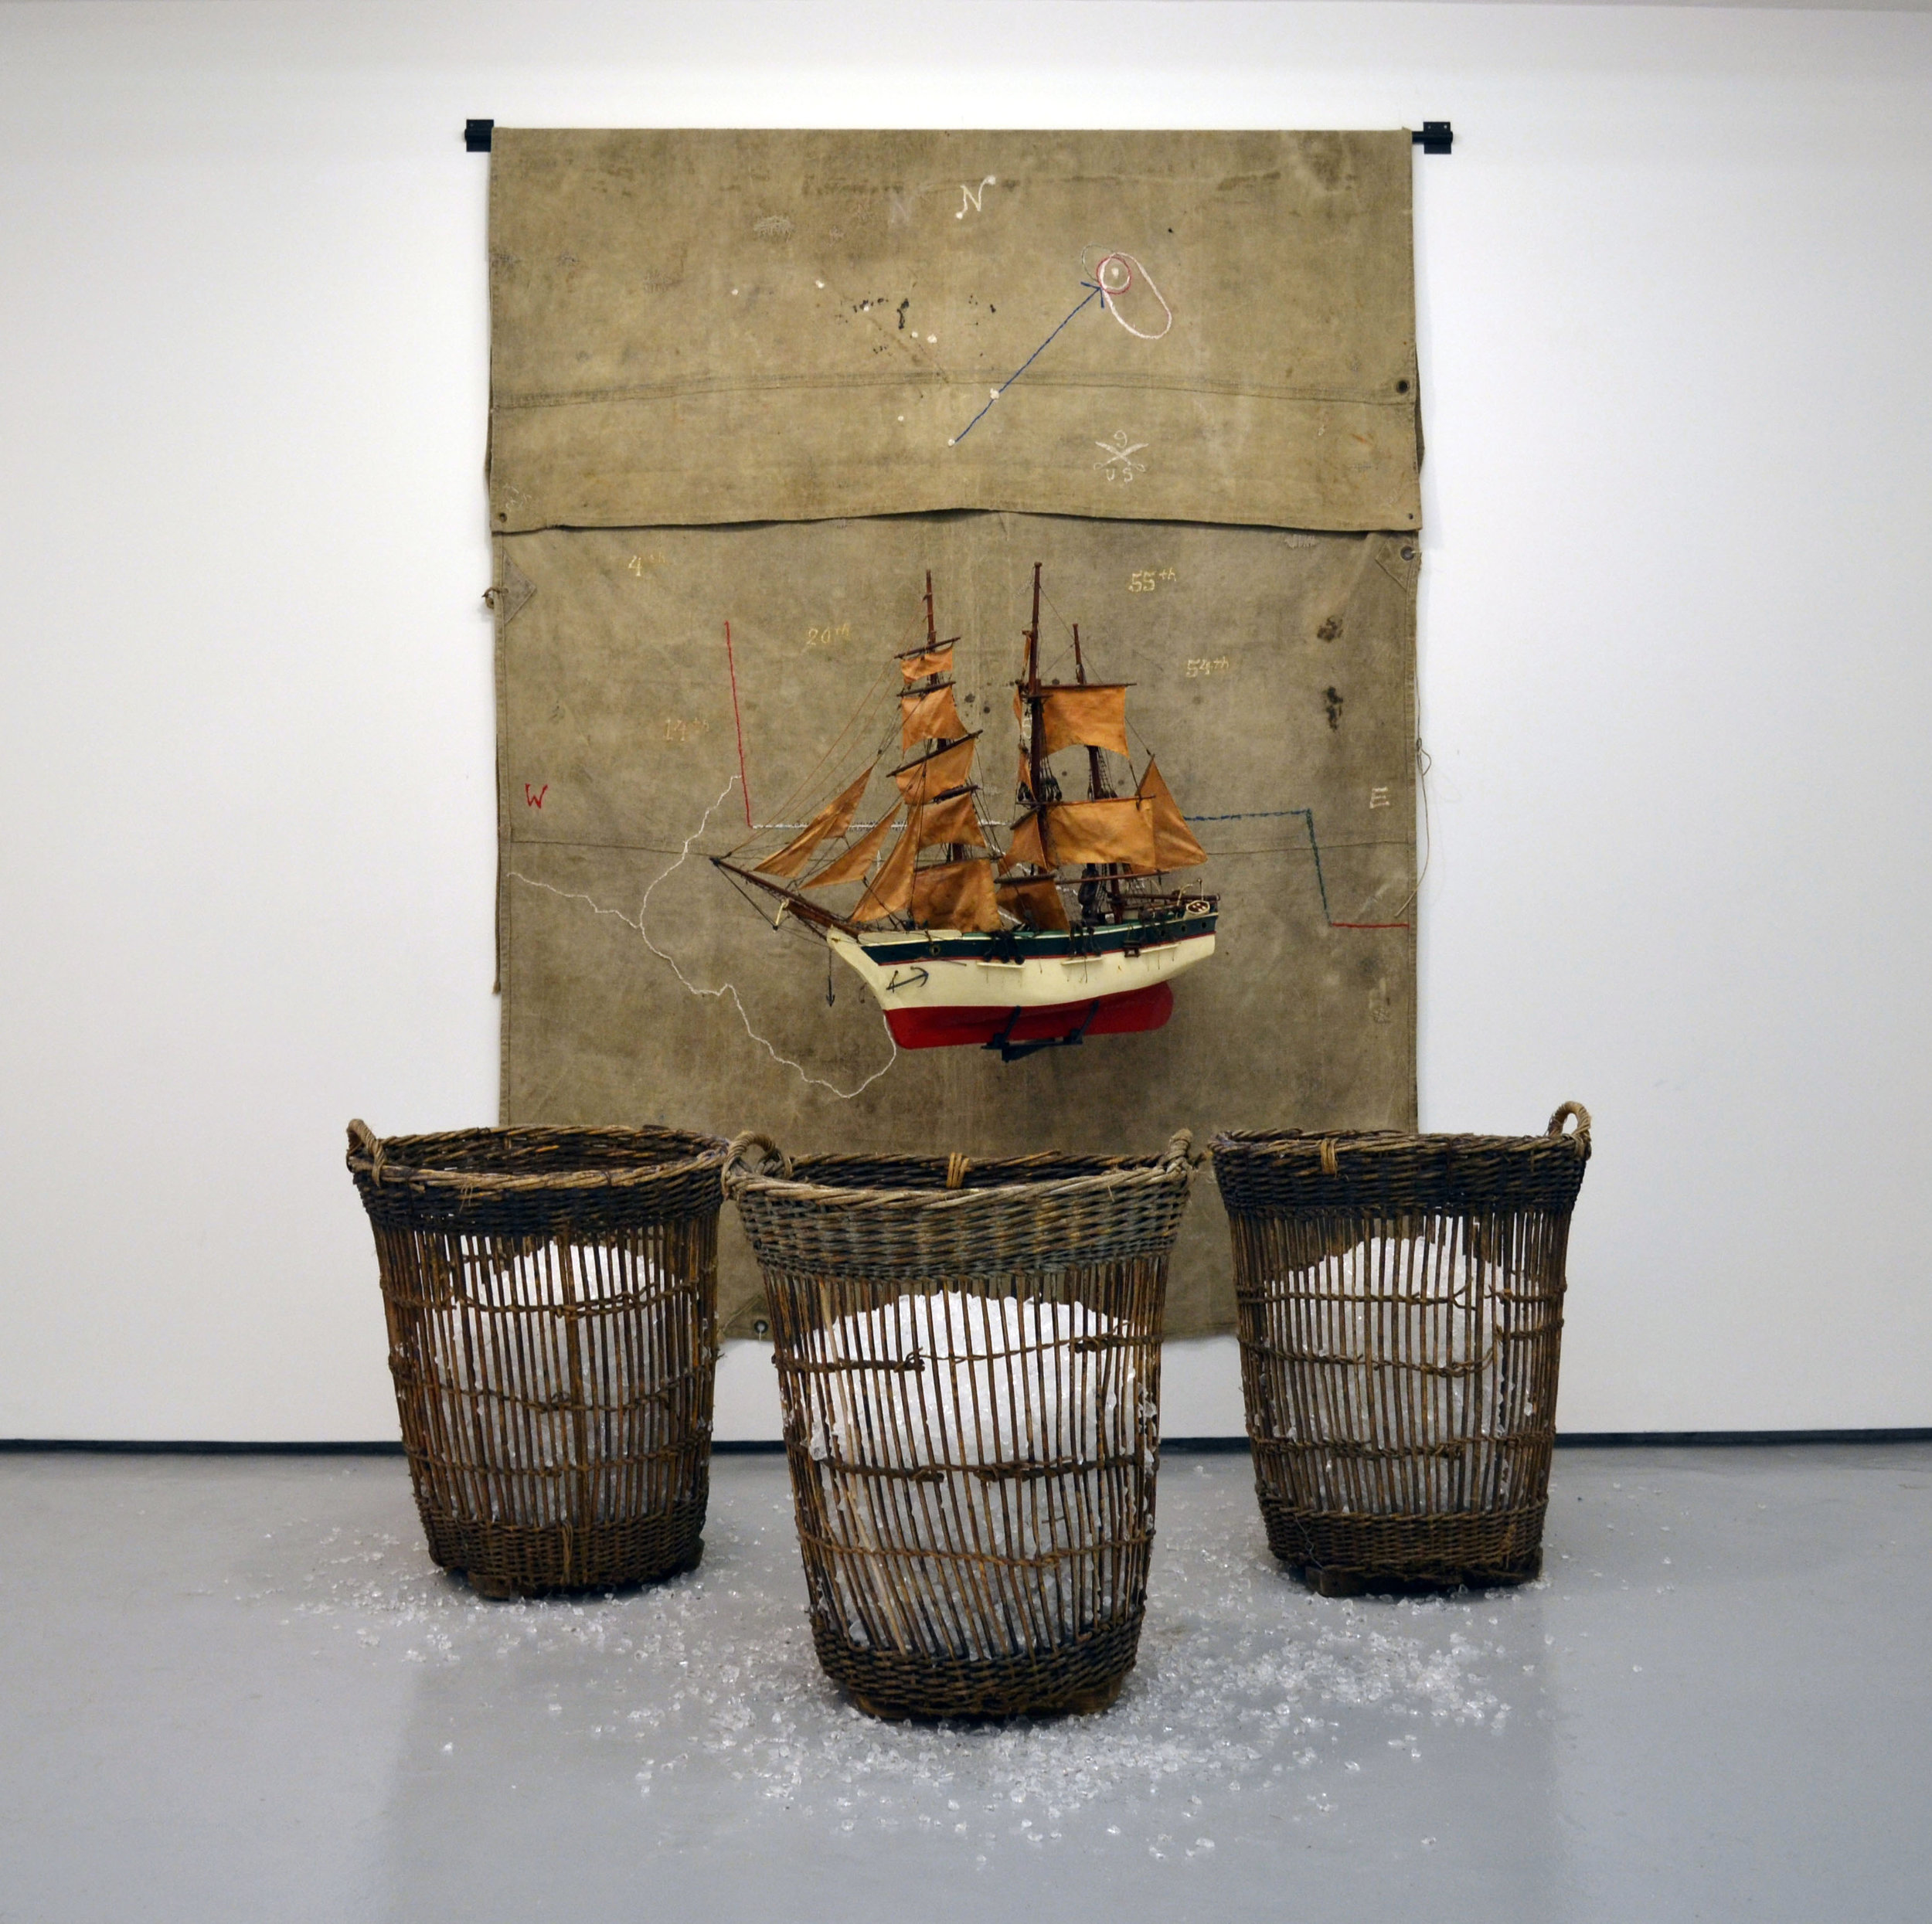 RADCLIFFE BAILEY, Vessel , 2012, tarp, iron, vintage model ship, wicker basket, and glass, 120 x 188 x 89 inches Courtesy of the artist and Jack Shainman Gallery, New York